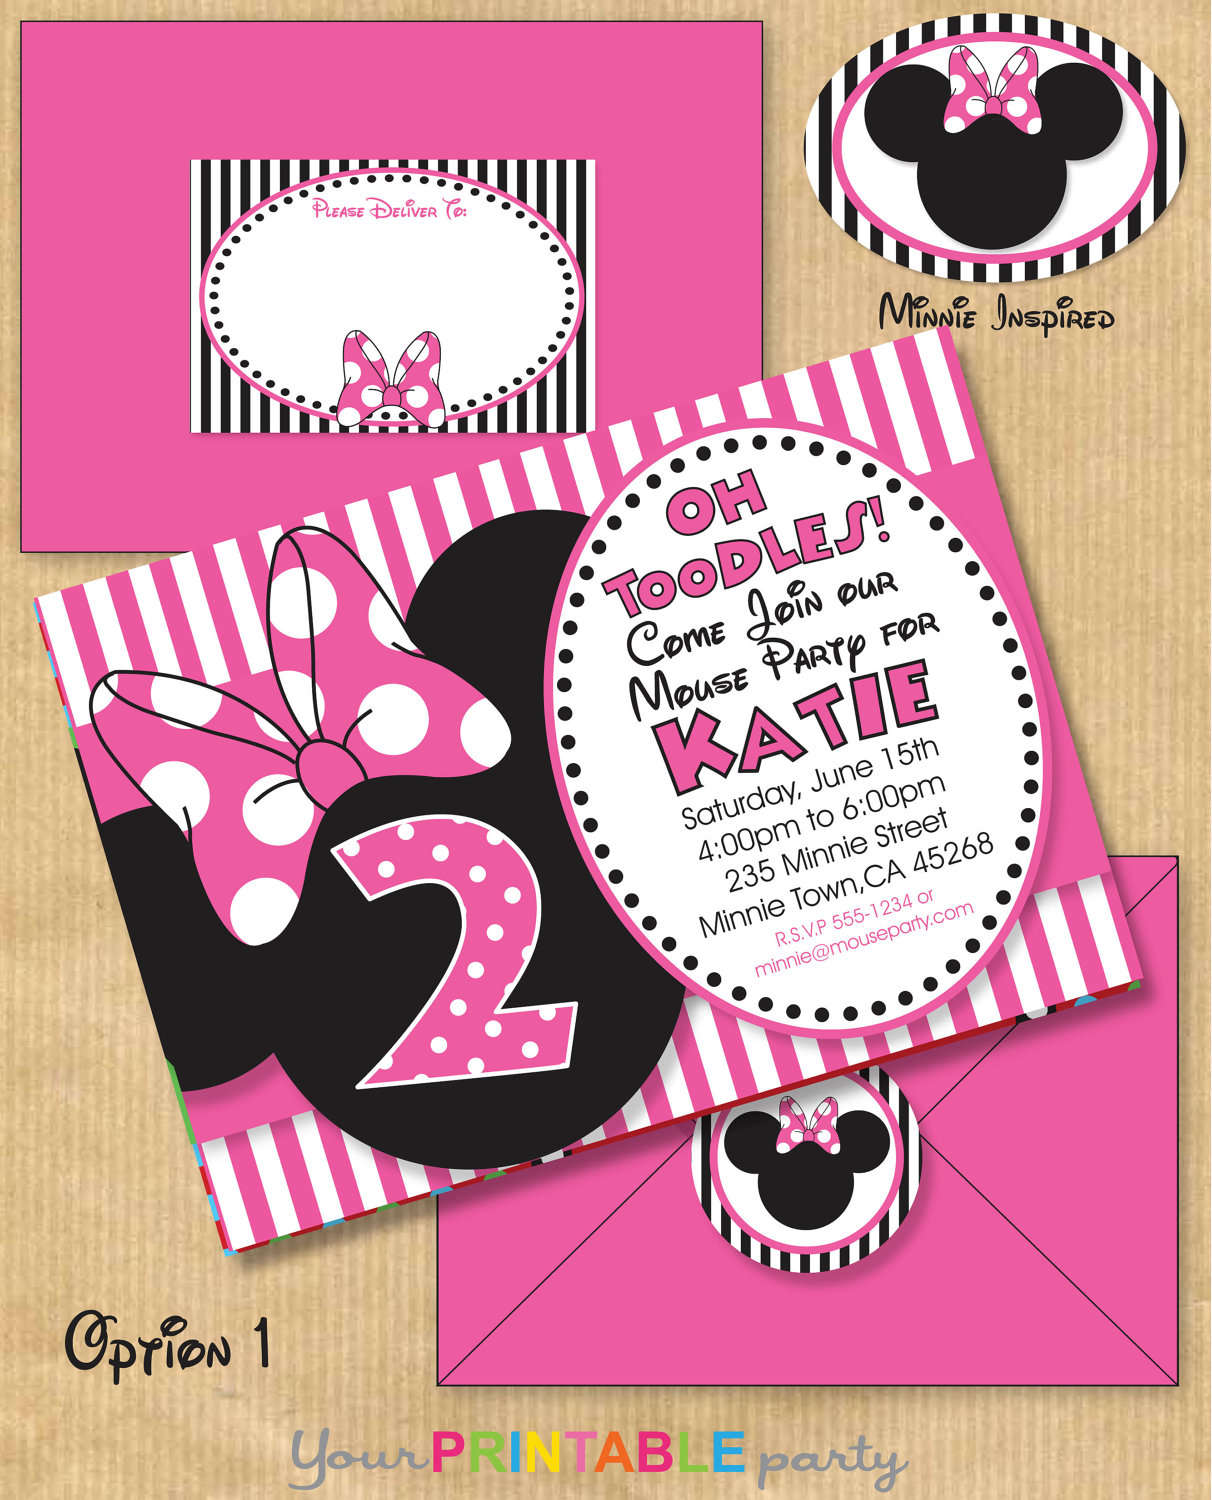 Party Invitation Template Minnie Mouse Party Invitations Custom